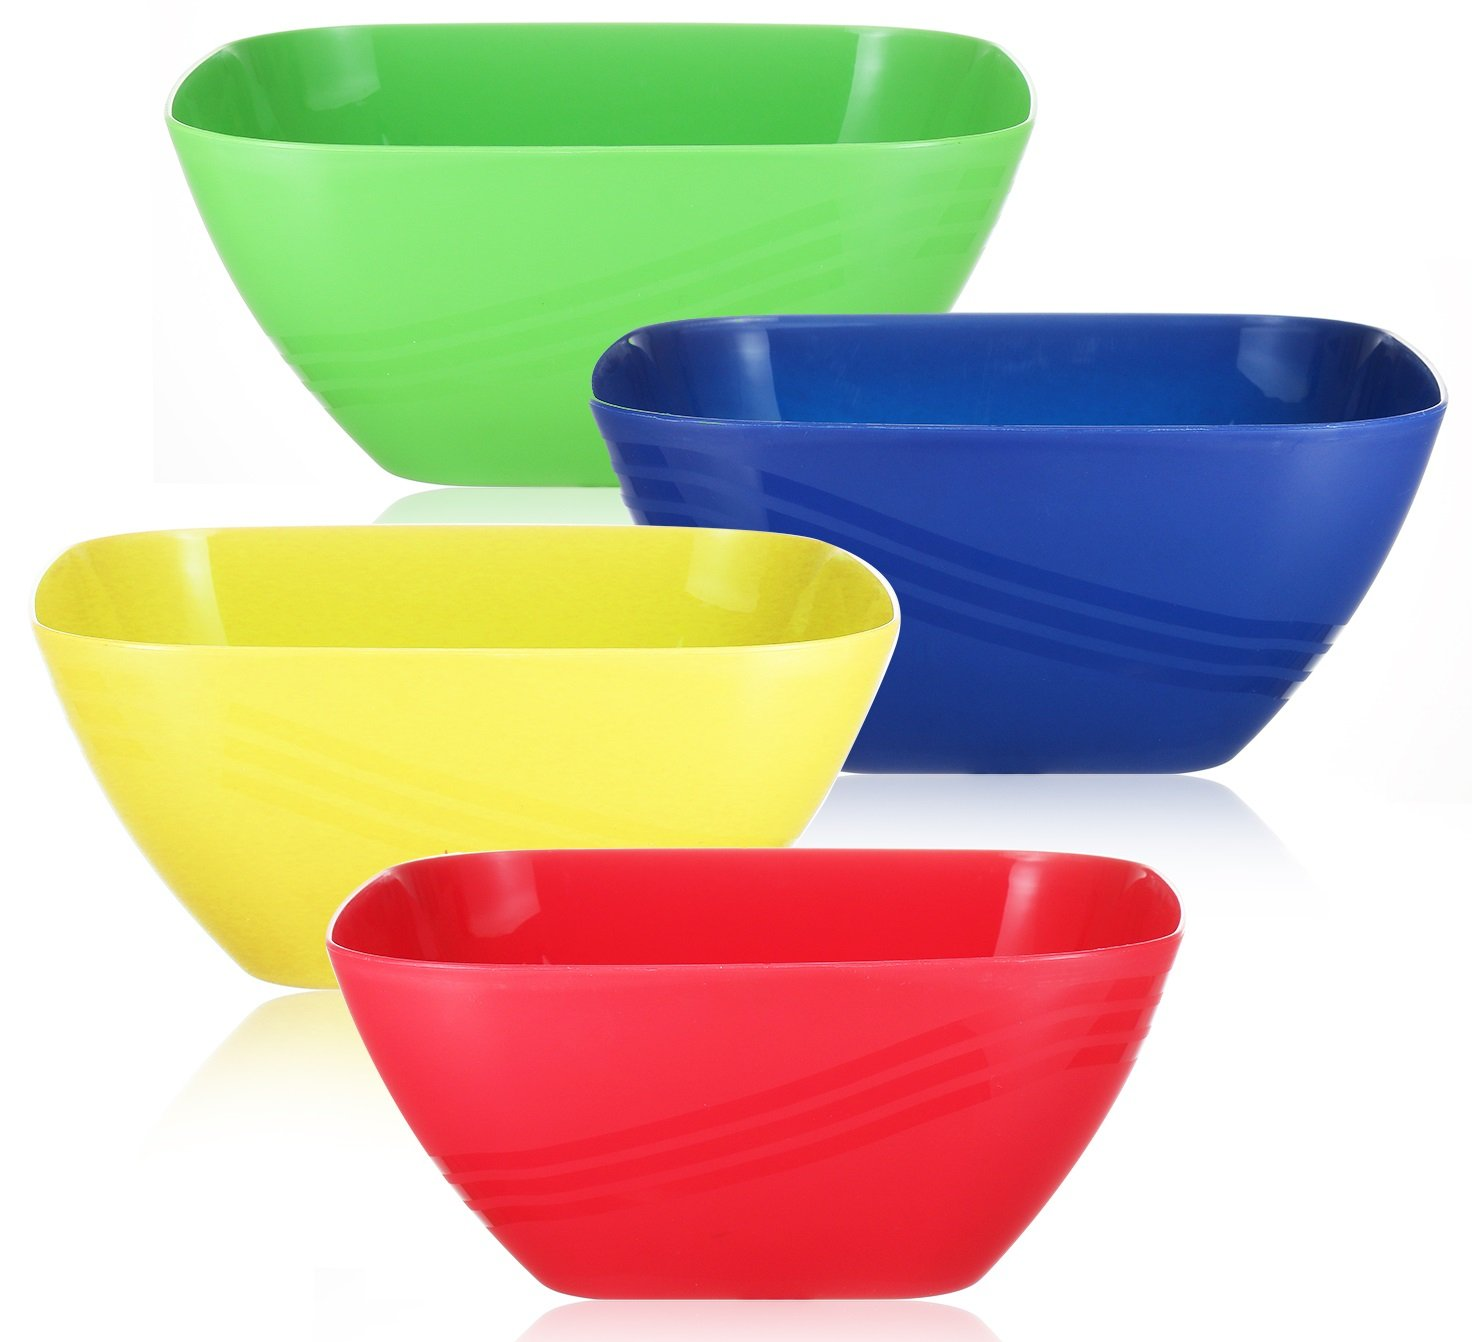 Set of 4 - Large Plastic Serving Bowls, Reusable Colorful Mixing Bowl, for Parties Side Dishes, Snack and Salad, Unbreakable Popcorn Party Tub Bucket,152-OZ